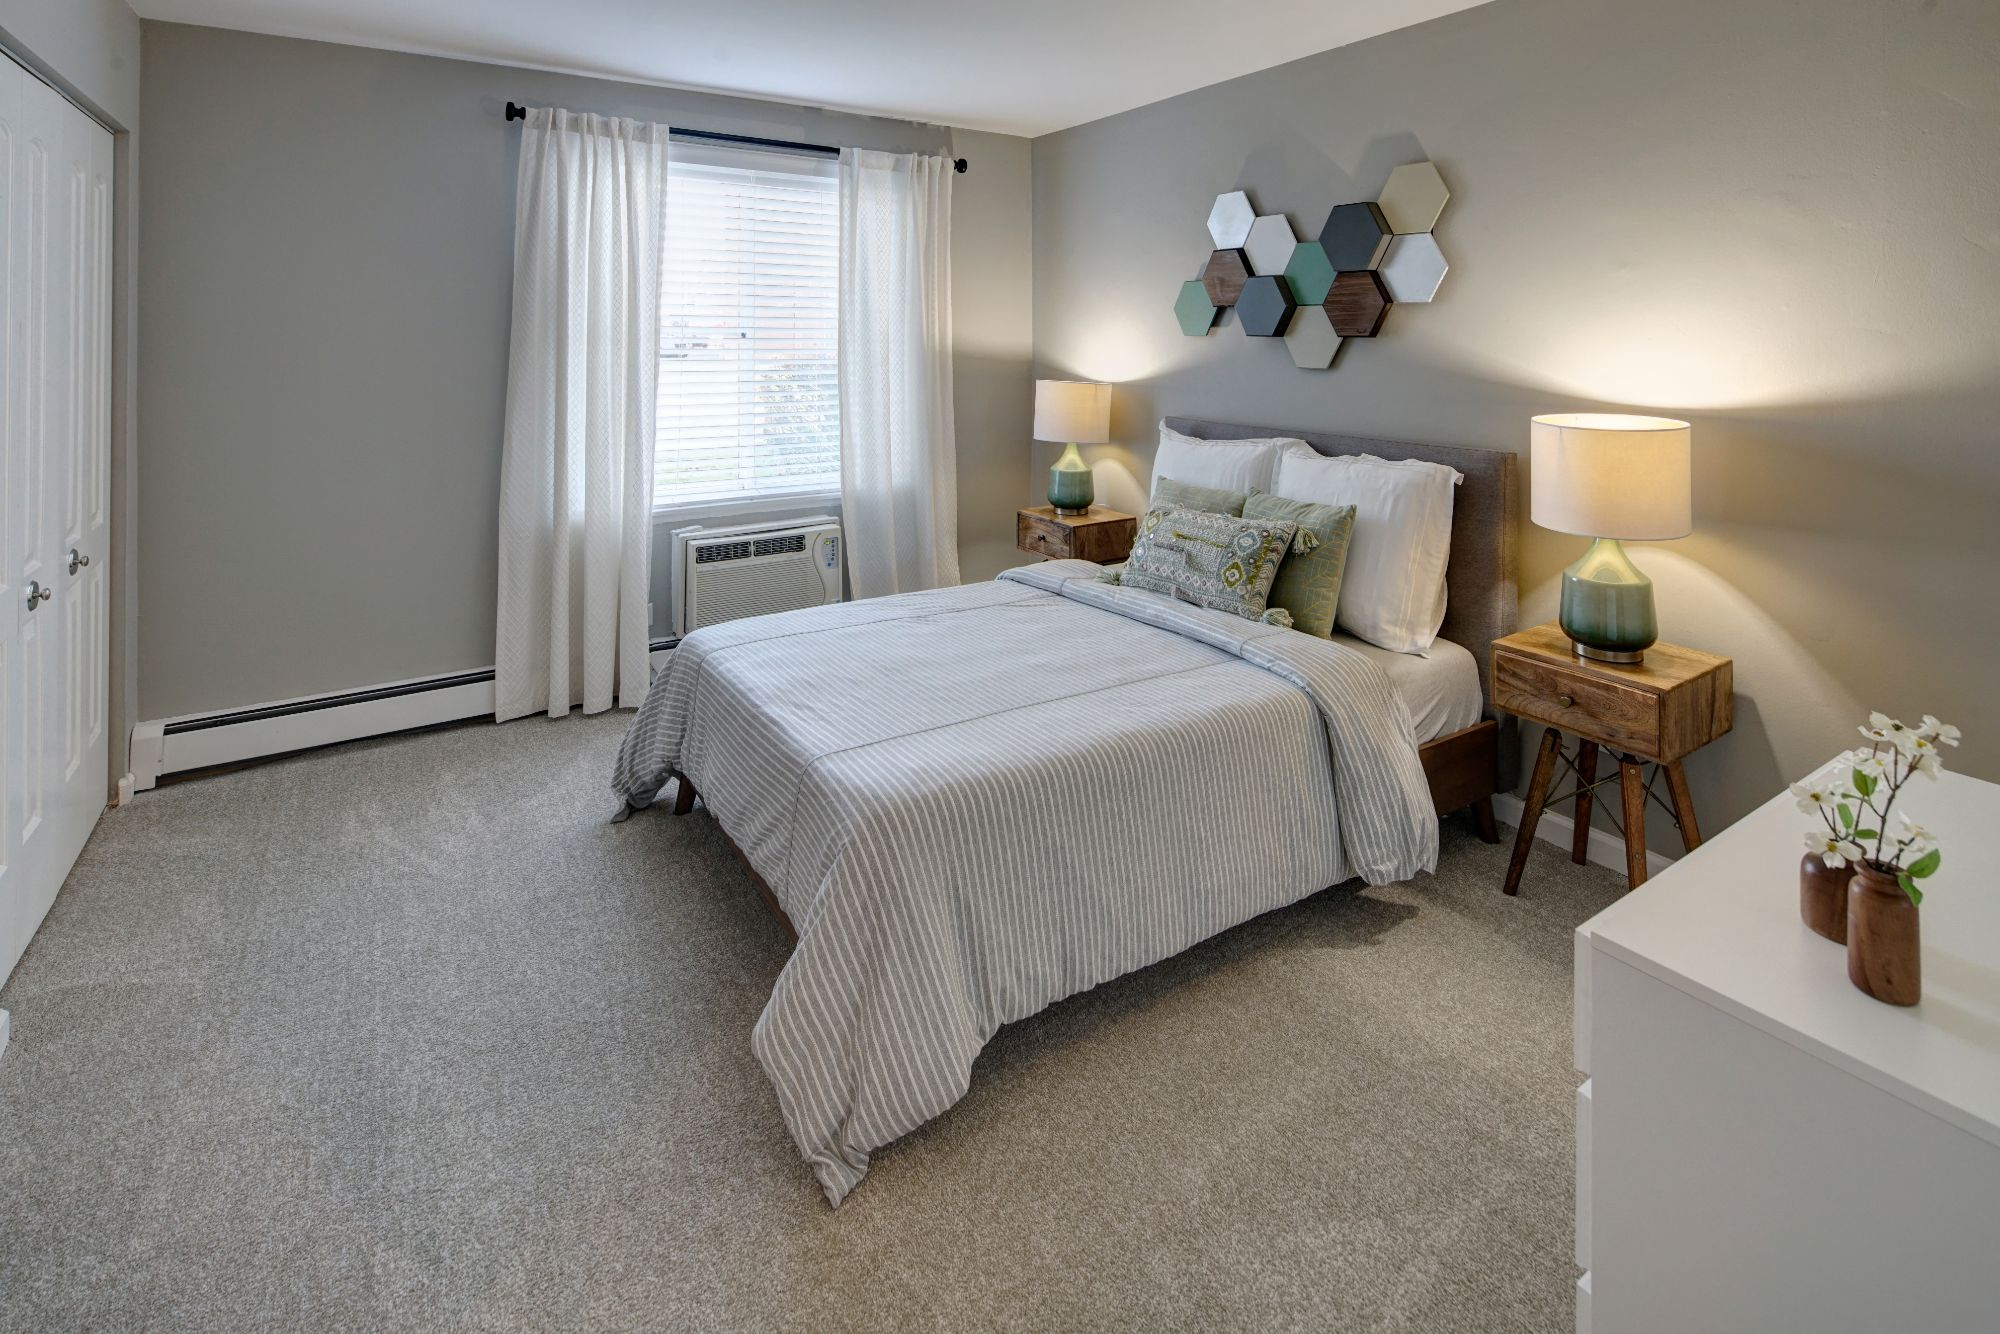 Apartment Master Bedroom at Carol Stream Crossing, Carol Stream, Illinois